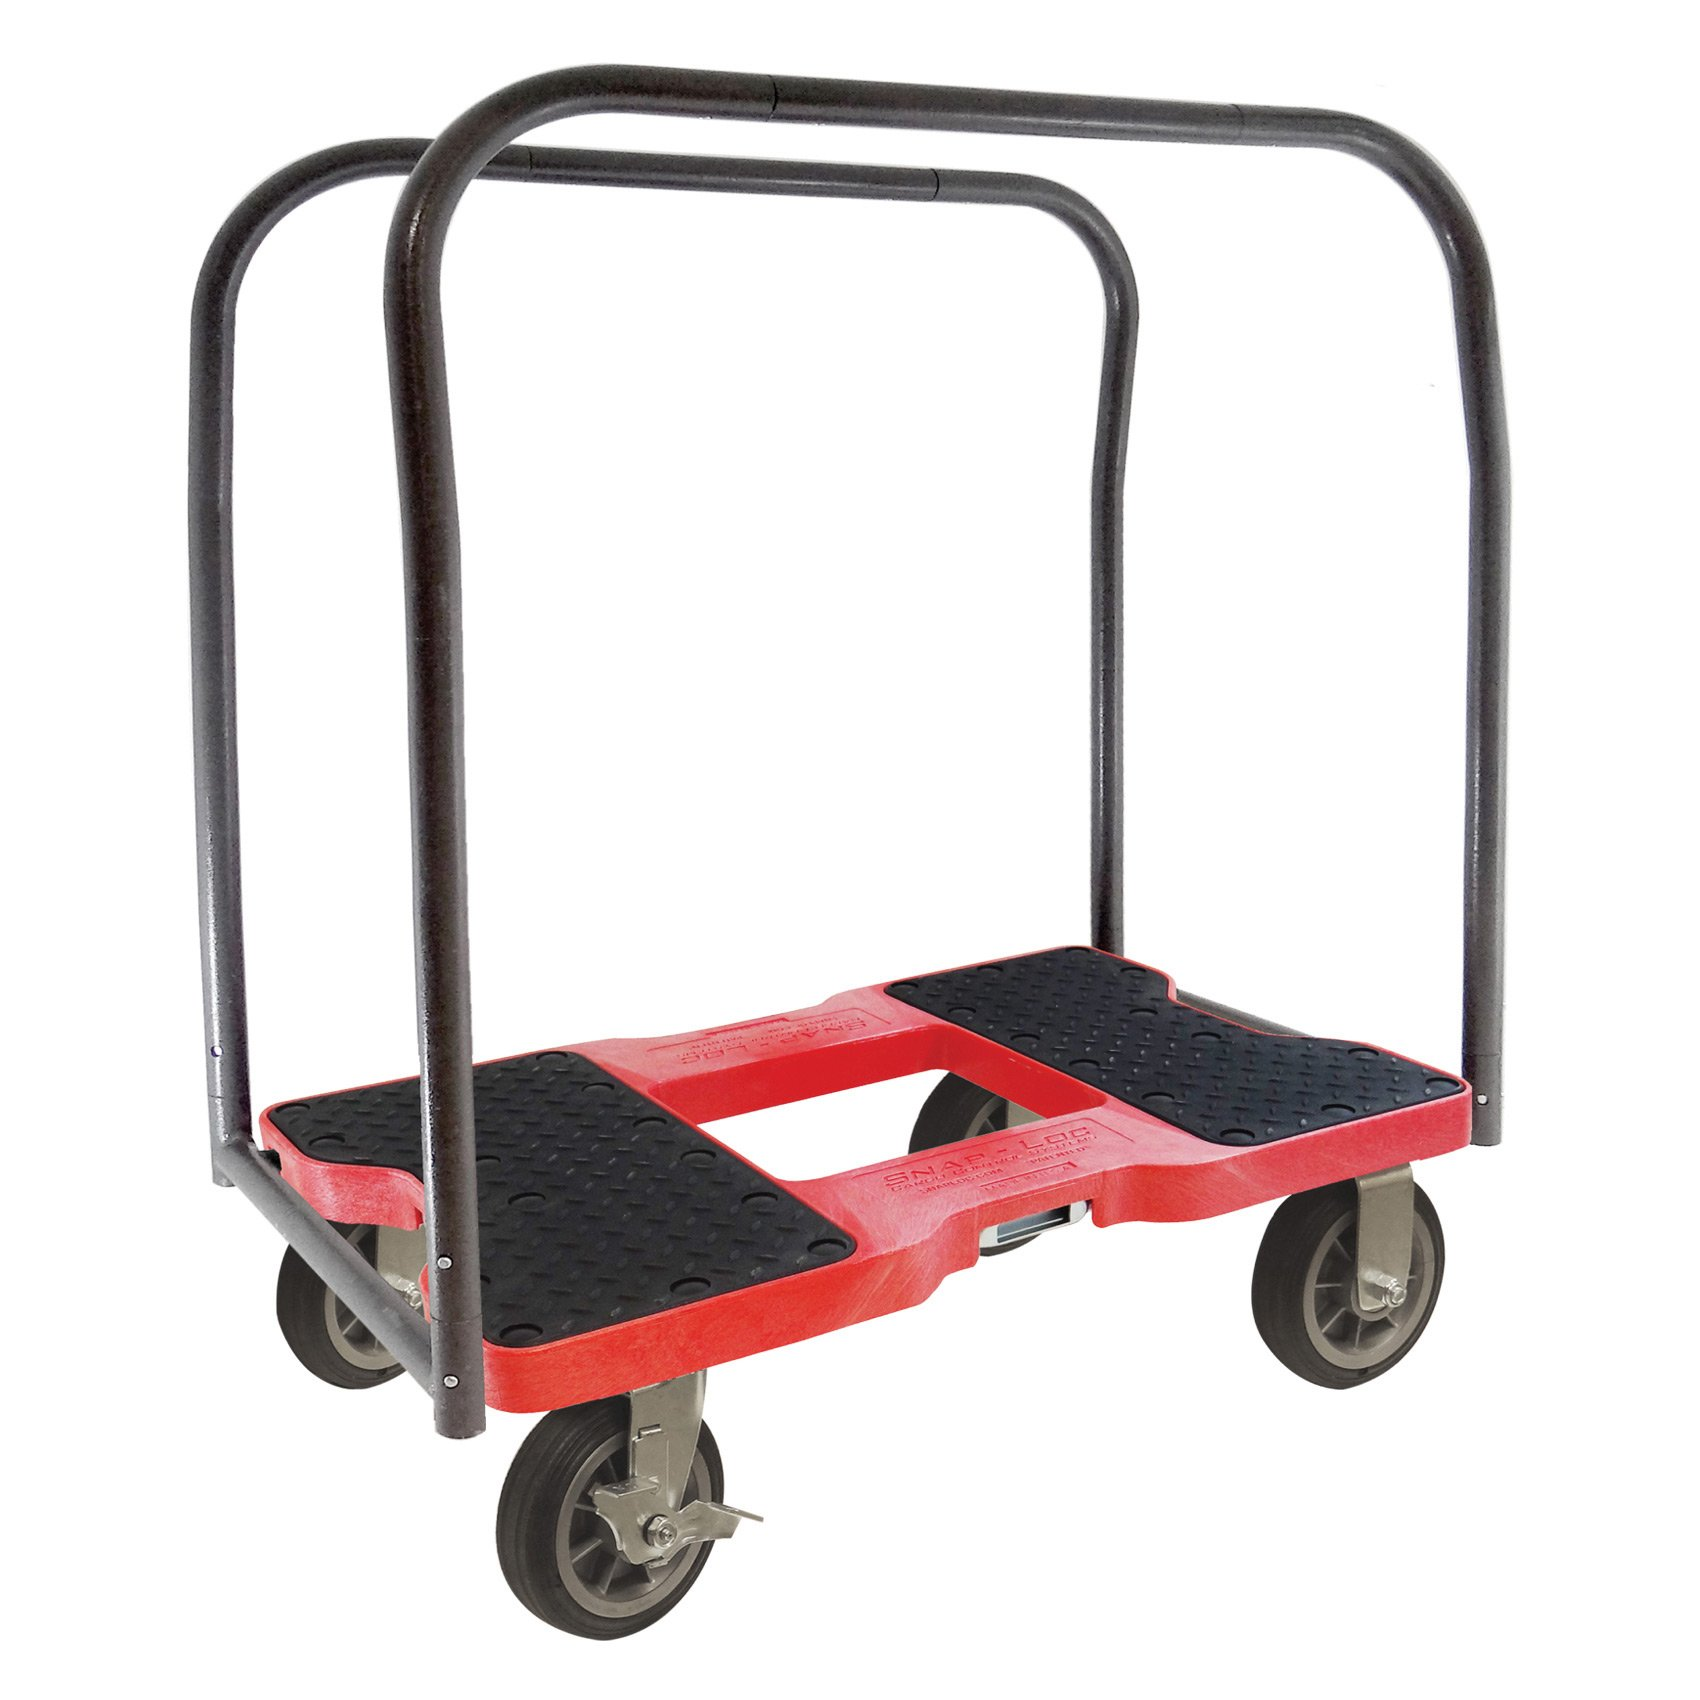 SNAP-LOC ALL-TERRAIN PANEL CART DOLLY RED with 1500 lb Capacity, Steel Frame, 4 inch Casters, Panel Bars and optional E-Strap Attachment